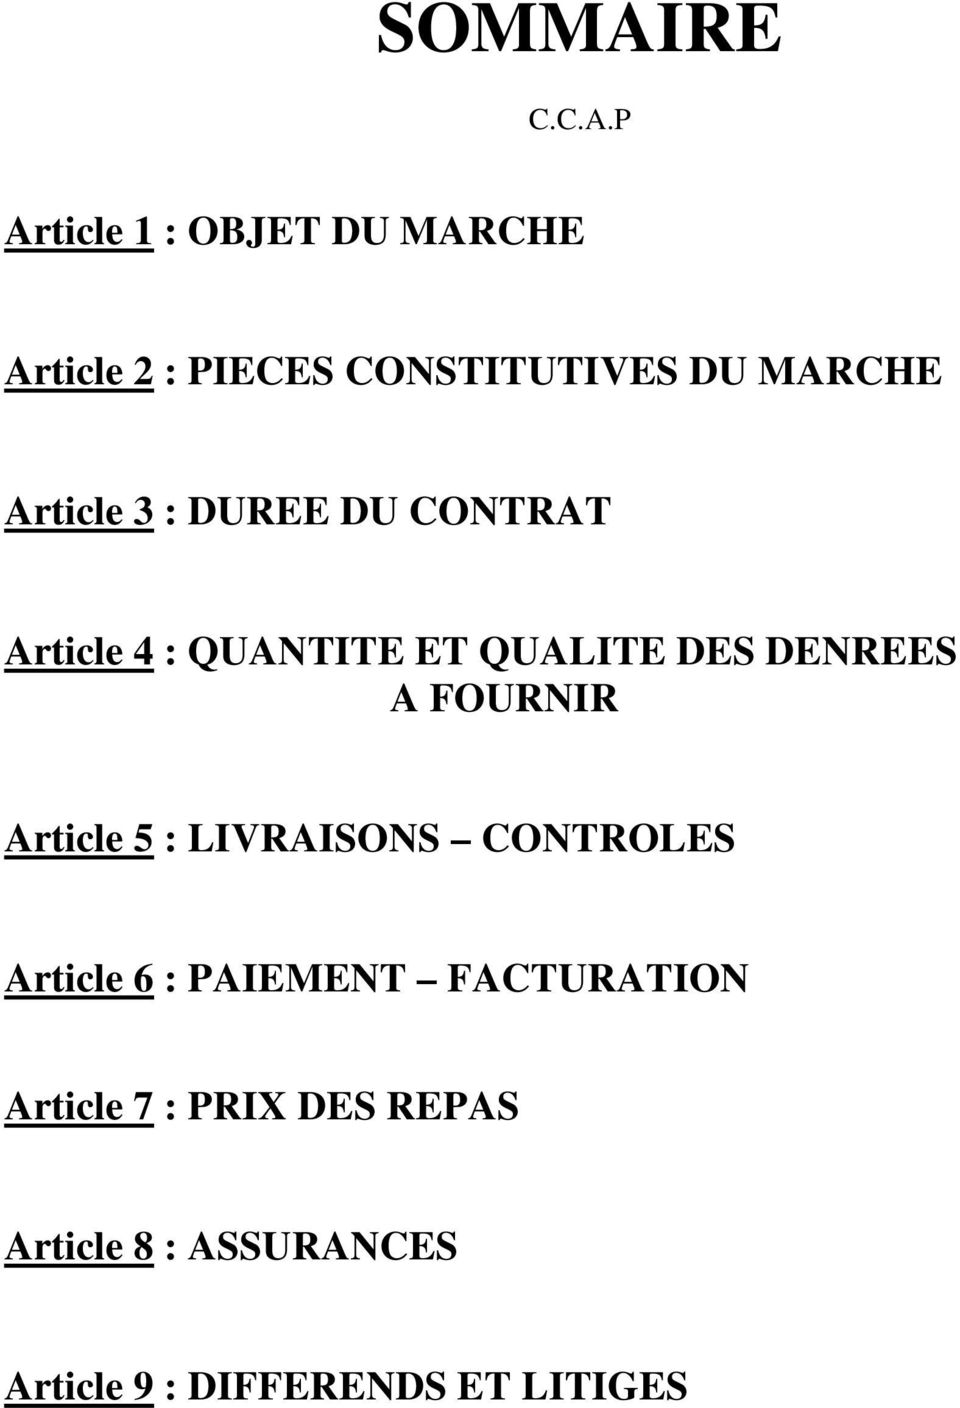 P Article 1 : OBJET DU MARCHE Article 2 : PIECES CONSTITUTIVES DU MARCHE